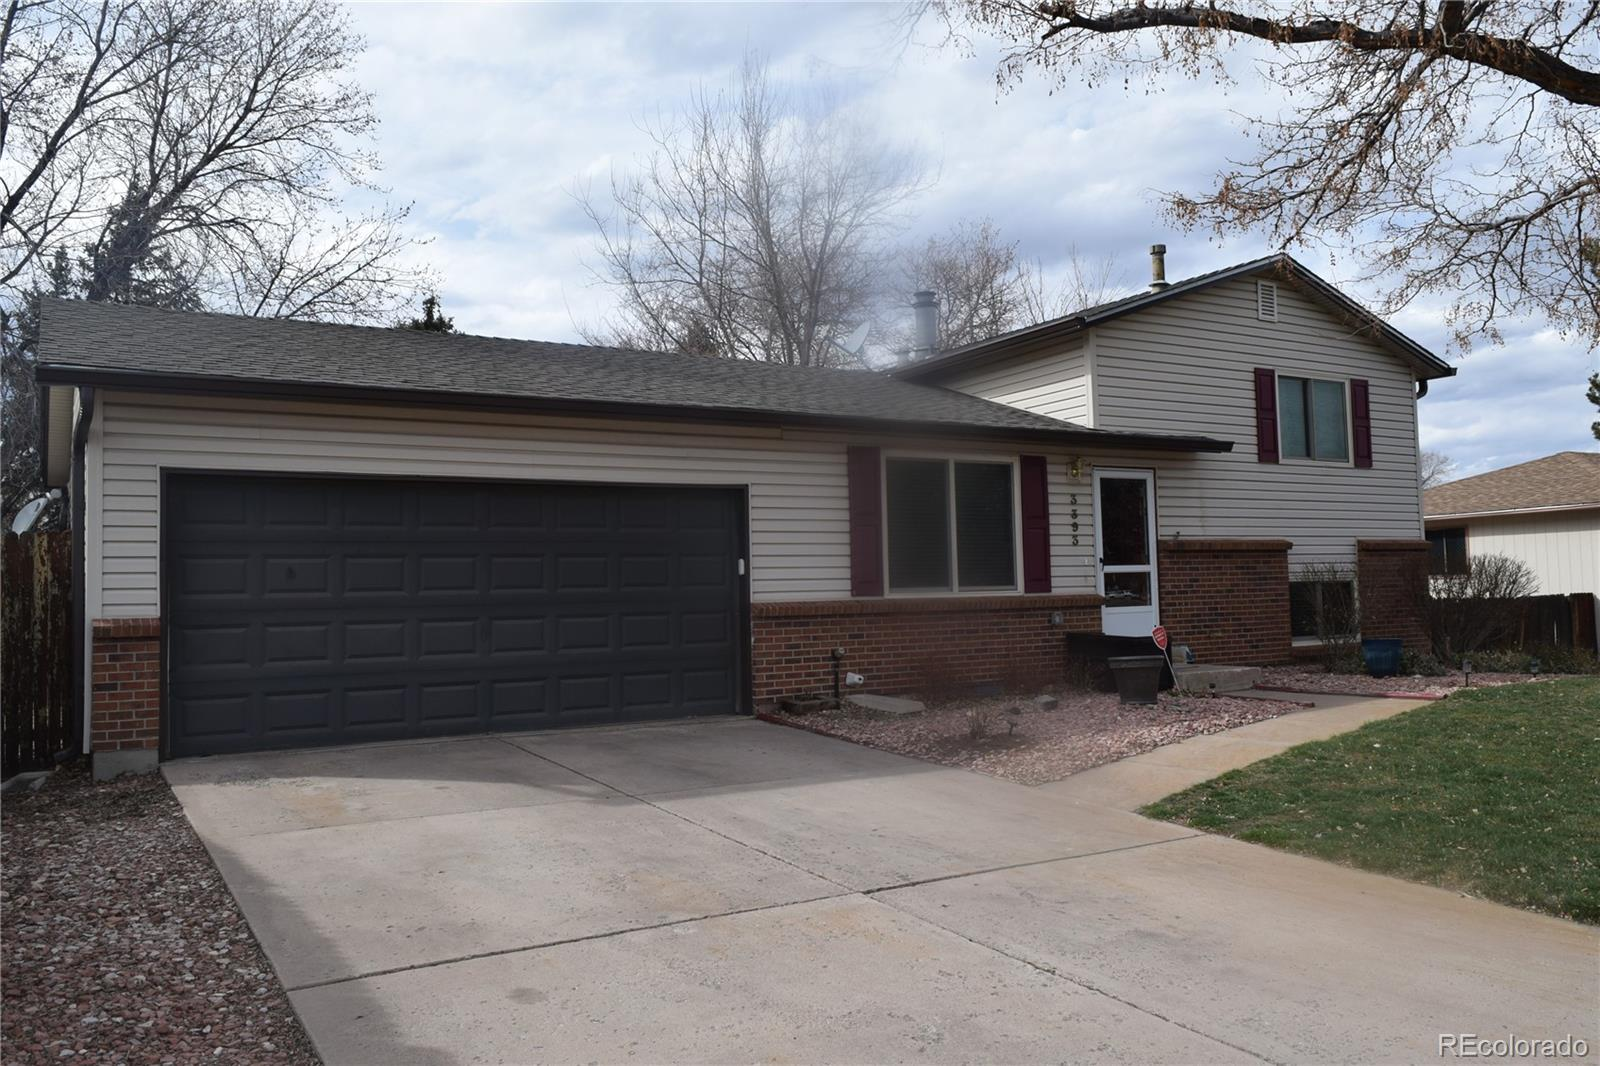 MLS# 9831880 - 1 - 3393 S Winston Street, Aurora, CO 80013